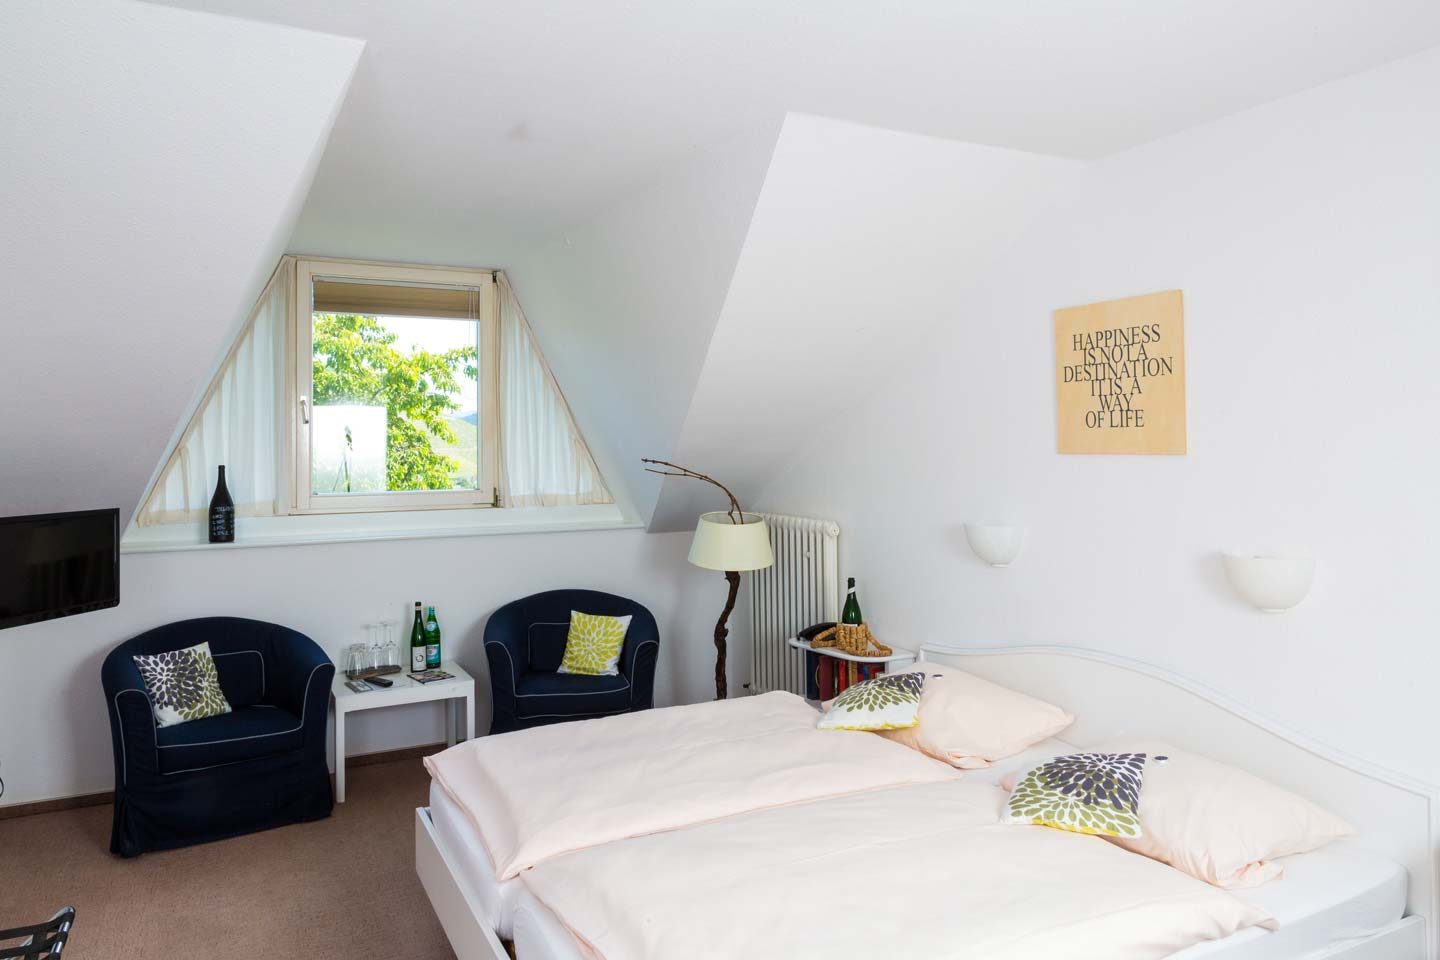 Attic room with double bed and armchairs